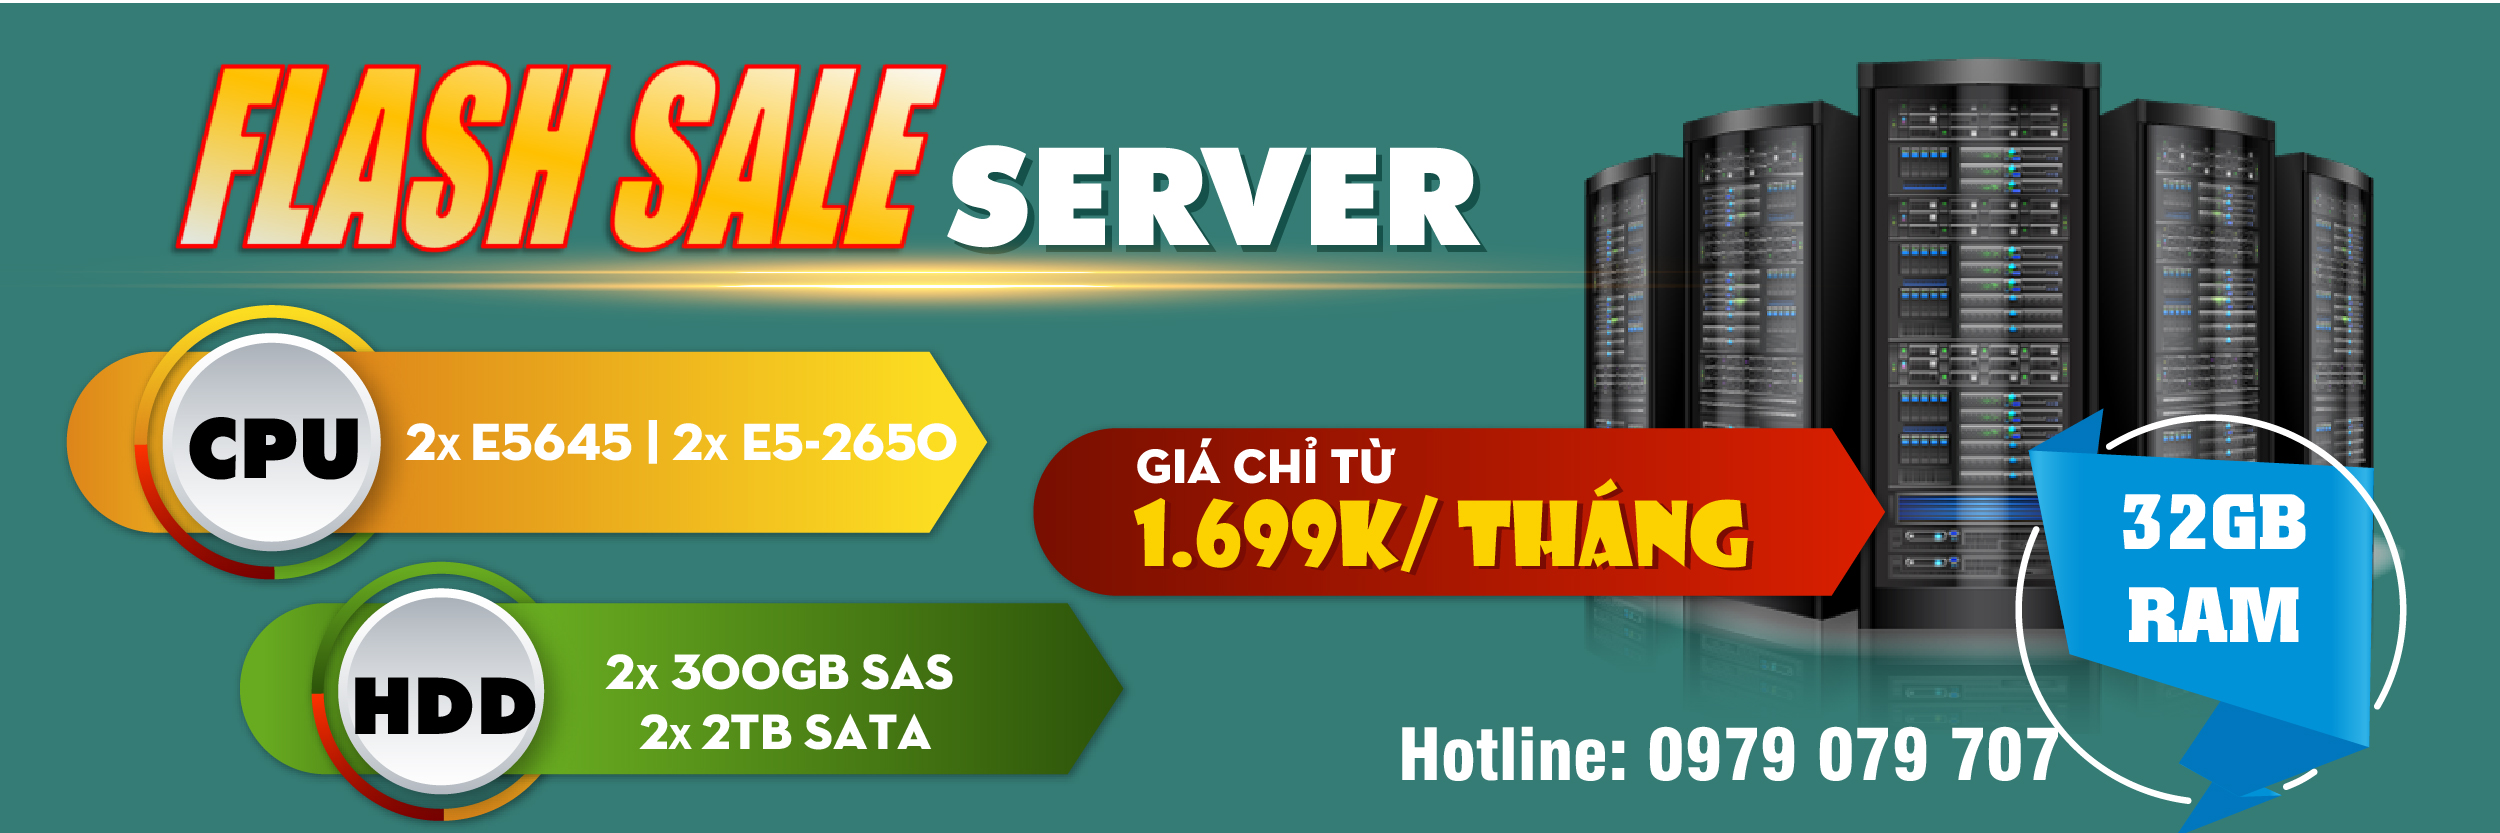 BANNER FLASH SALE SERVER